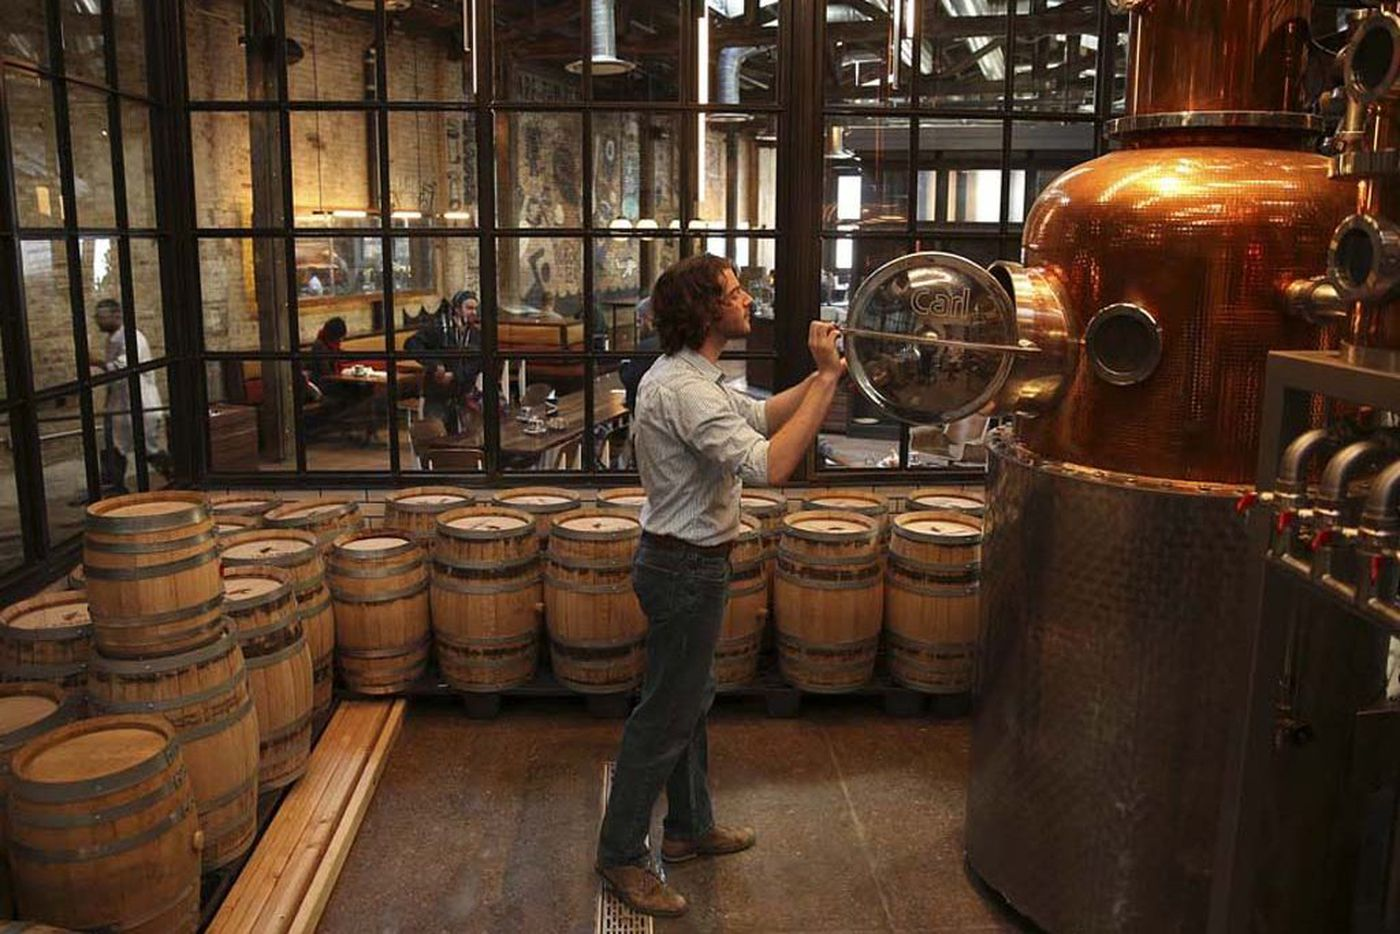 La Colombe sidelines its rum-distilling business